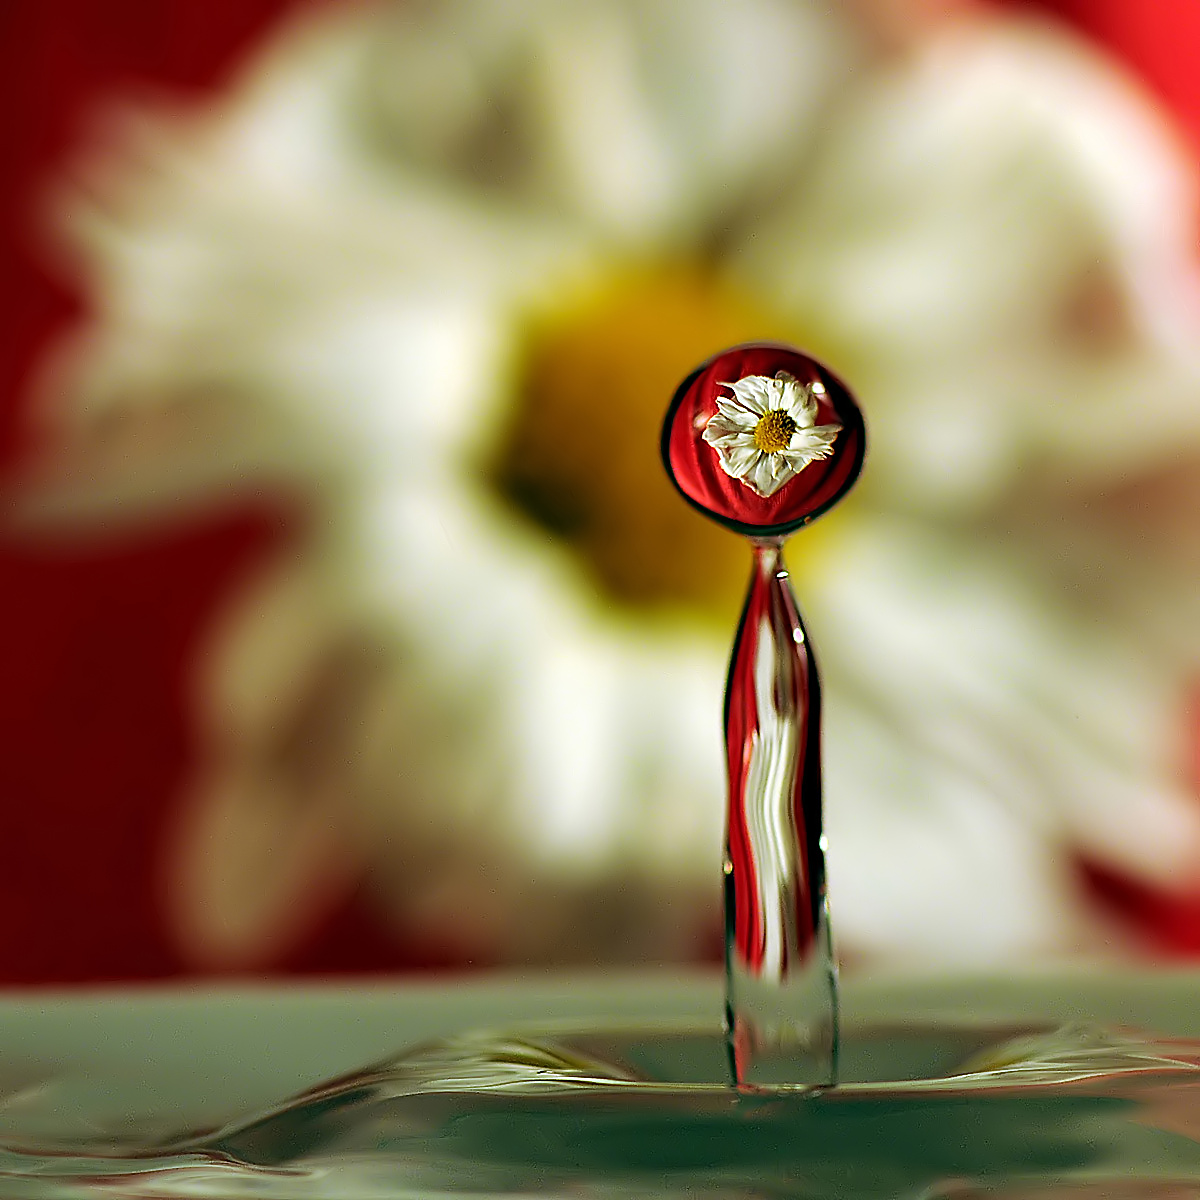 The flower in the drop...